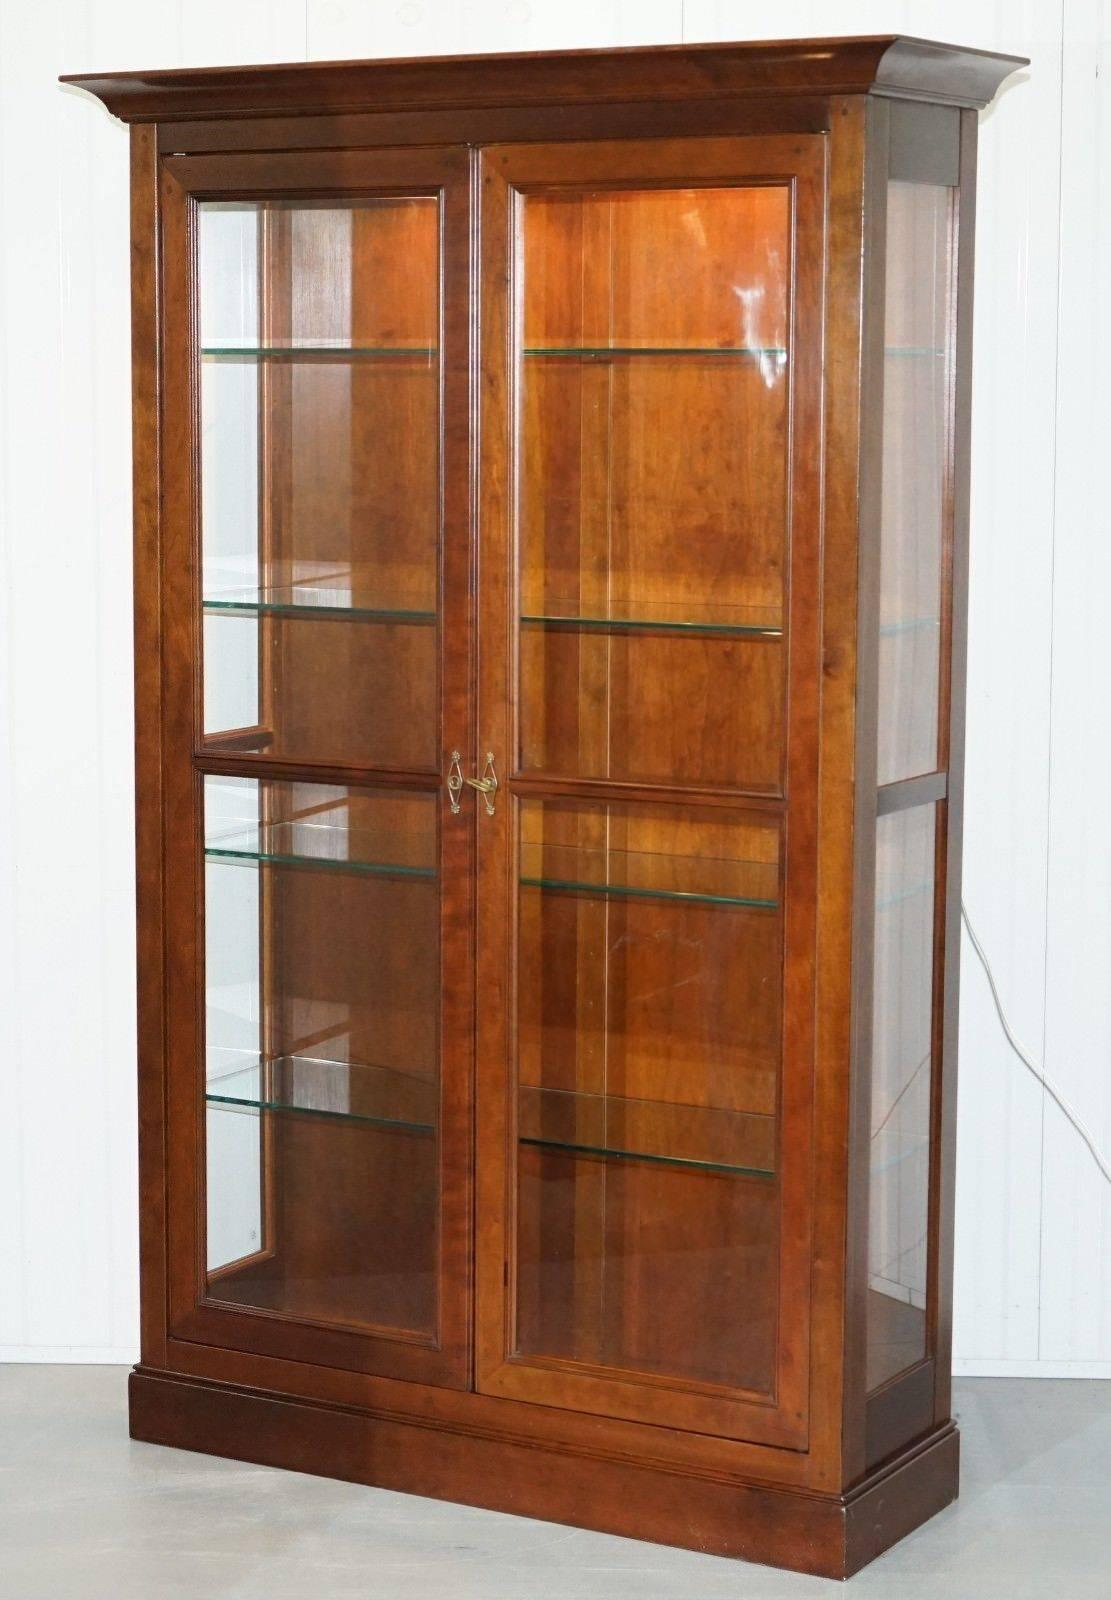 Genial French Provincial Stunning Grange Solid Cherry Wood Glass Display Cabinet  With Lights Bookcase For Sale